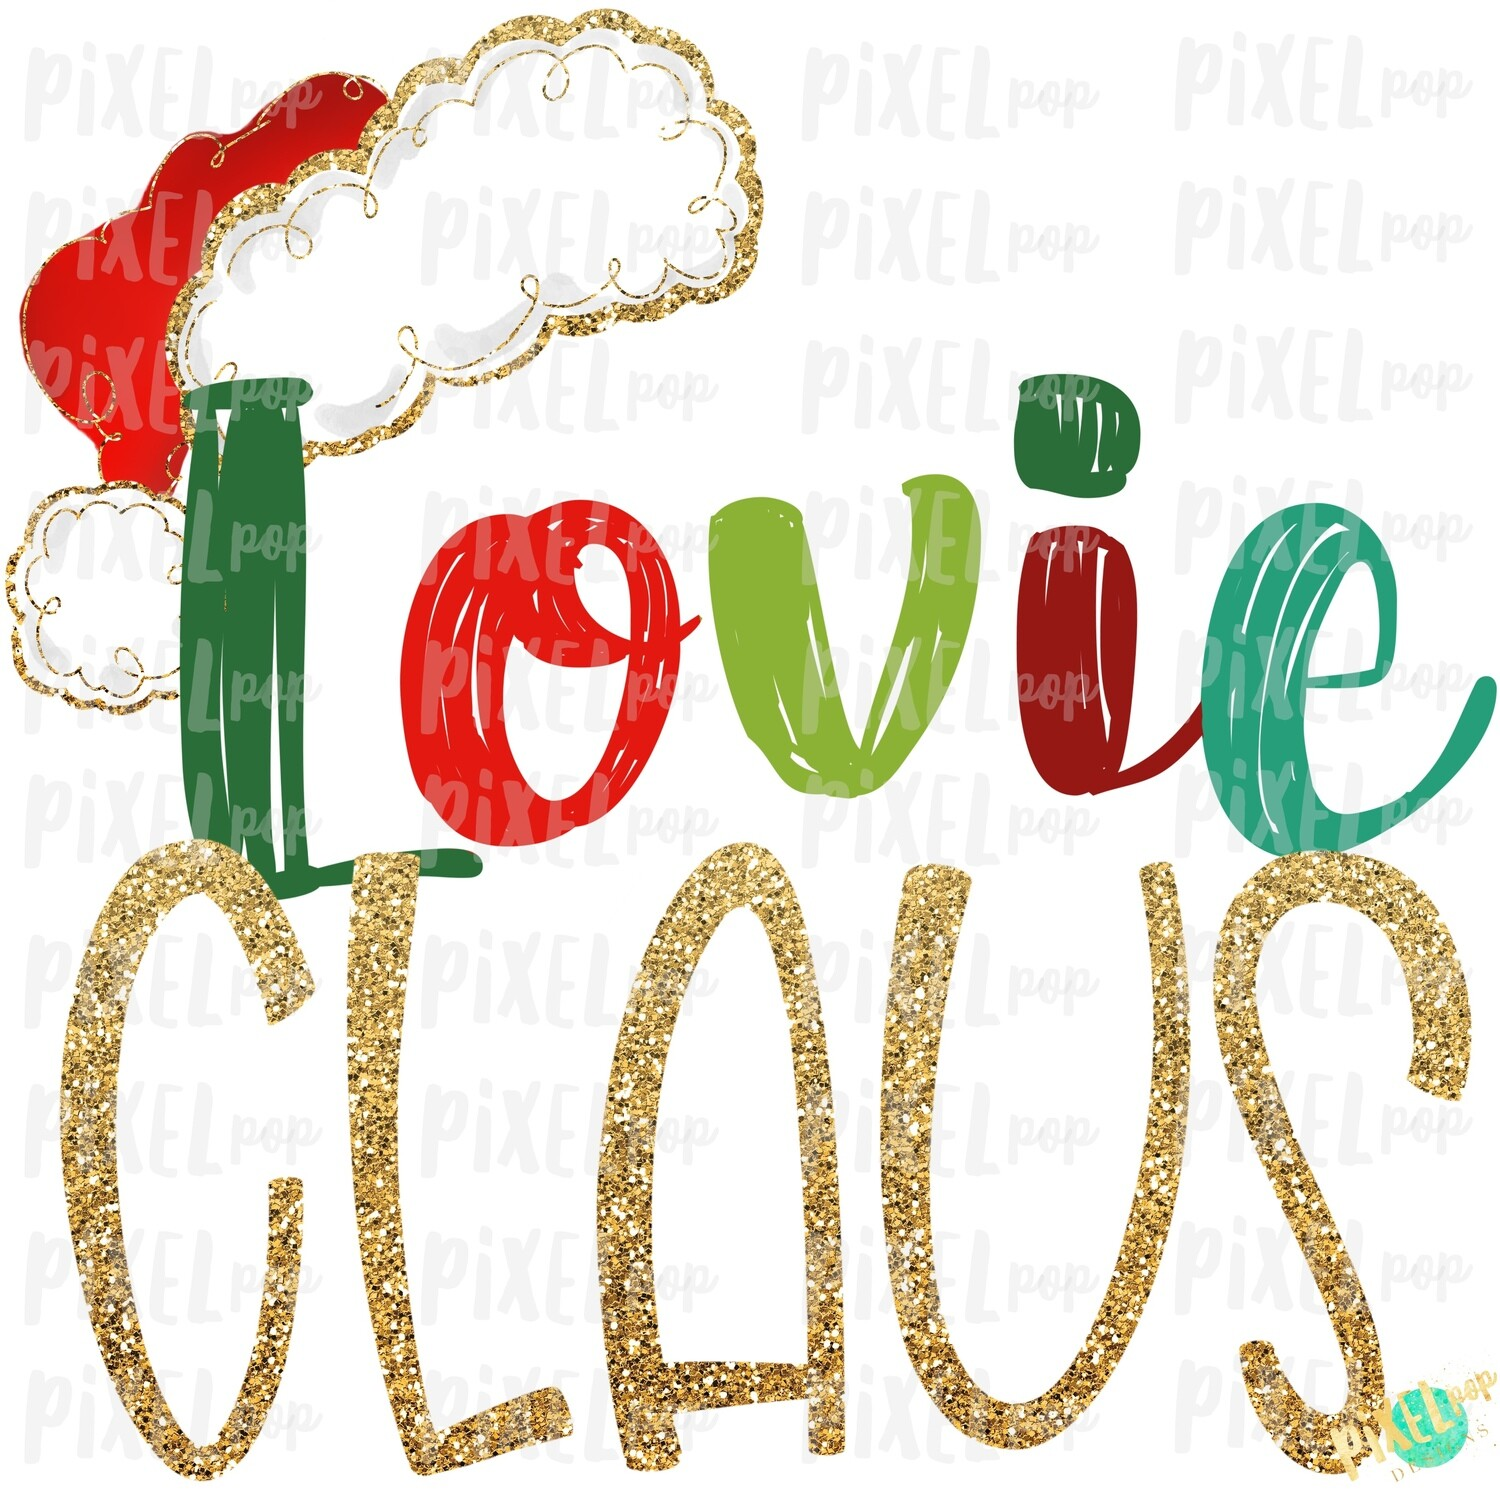 Lovie Claus Santa Hat Digital Watercolor Sublimation PNG Art | Drawn Design | Sublimation PNG | Digital Download | Printable Artwork | Art